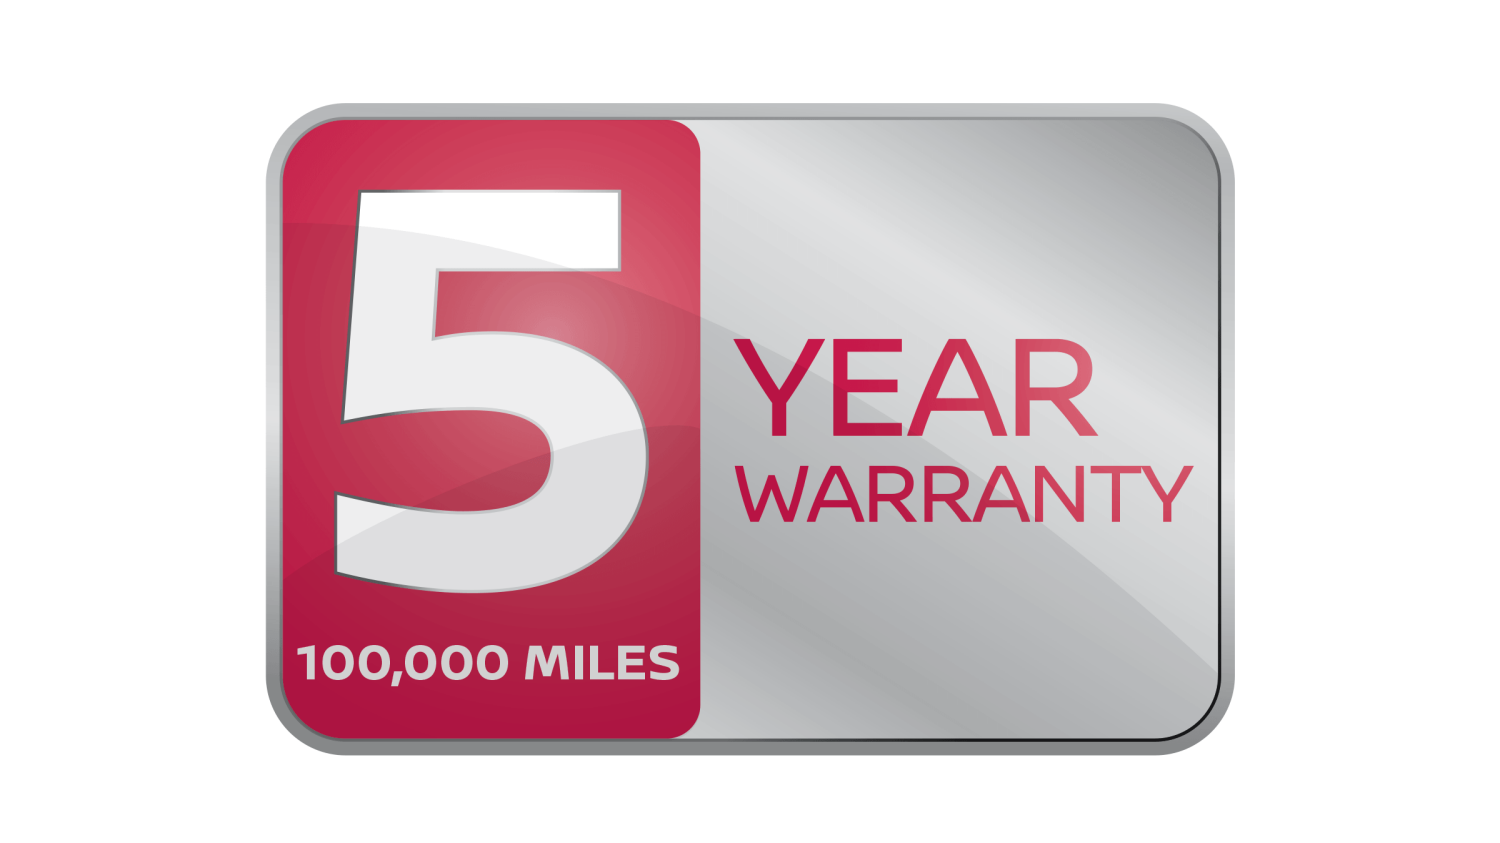 5-Year 100,000 miles Manufacturer Warranty